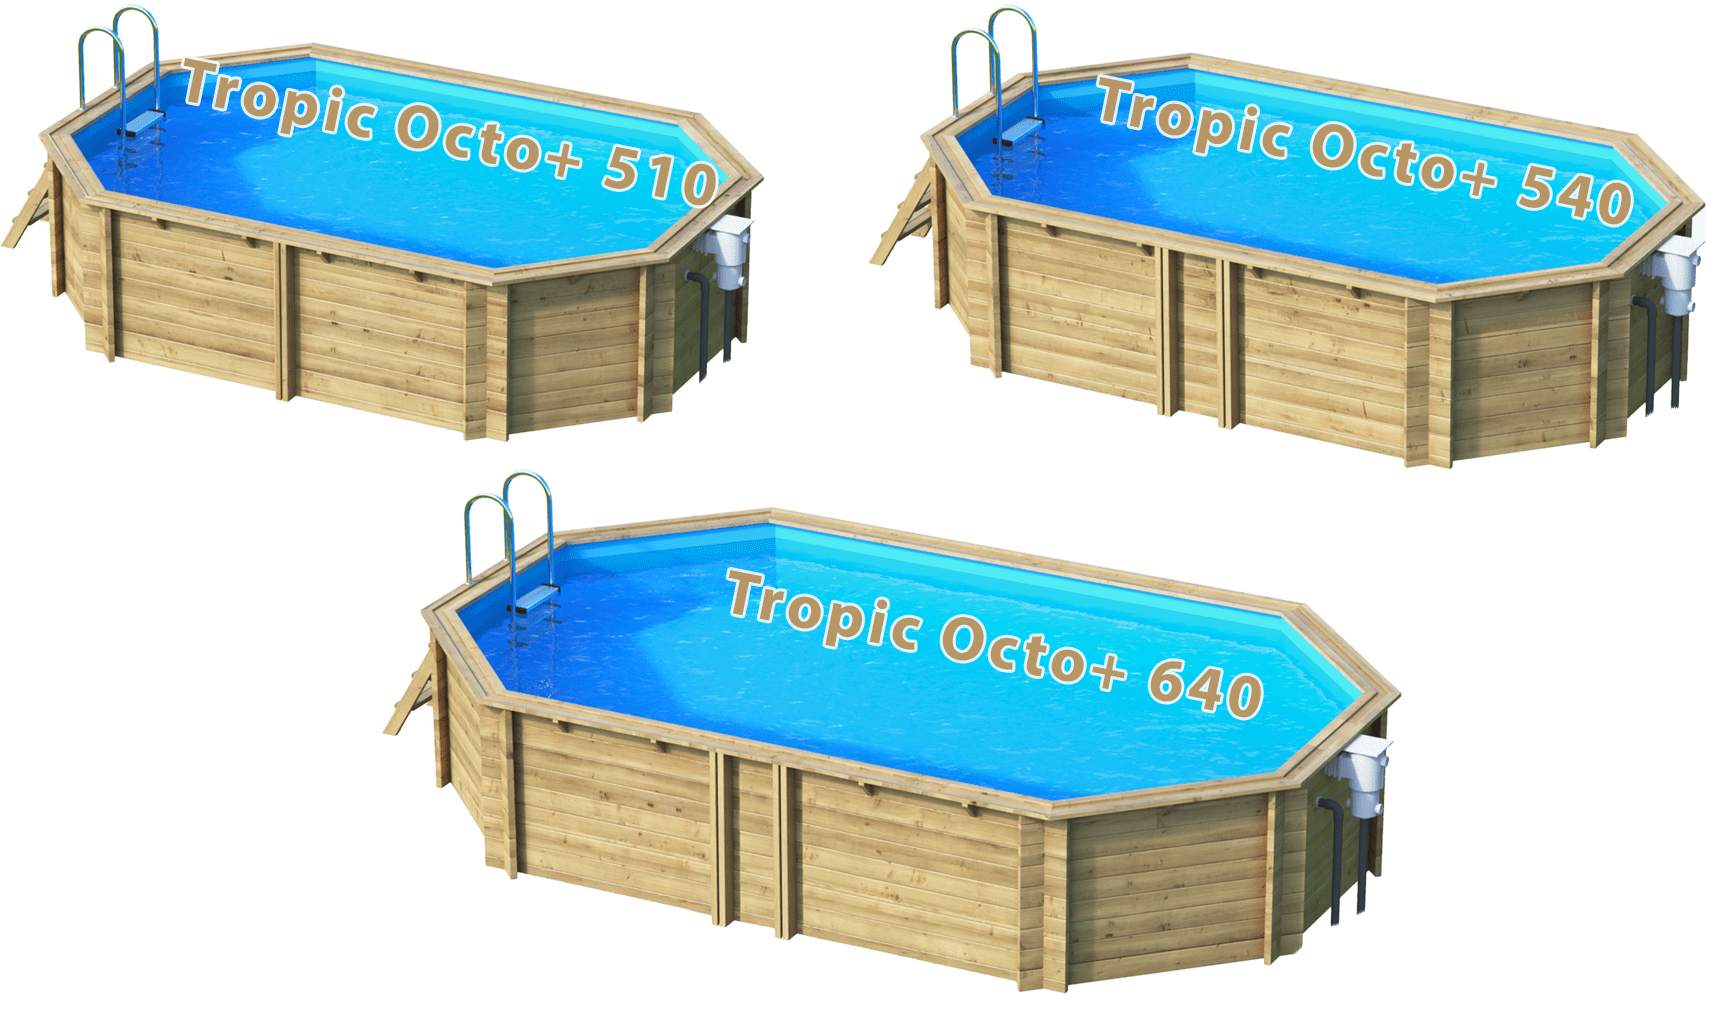 Pool Komplettset Aus Polen Pool Aus Massivholz Tropic Octo 43 Sunday Pools Onlineshop